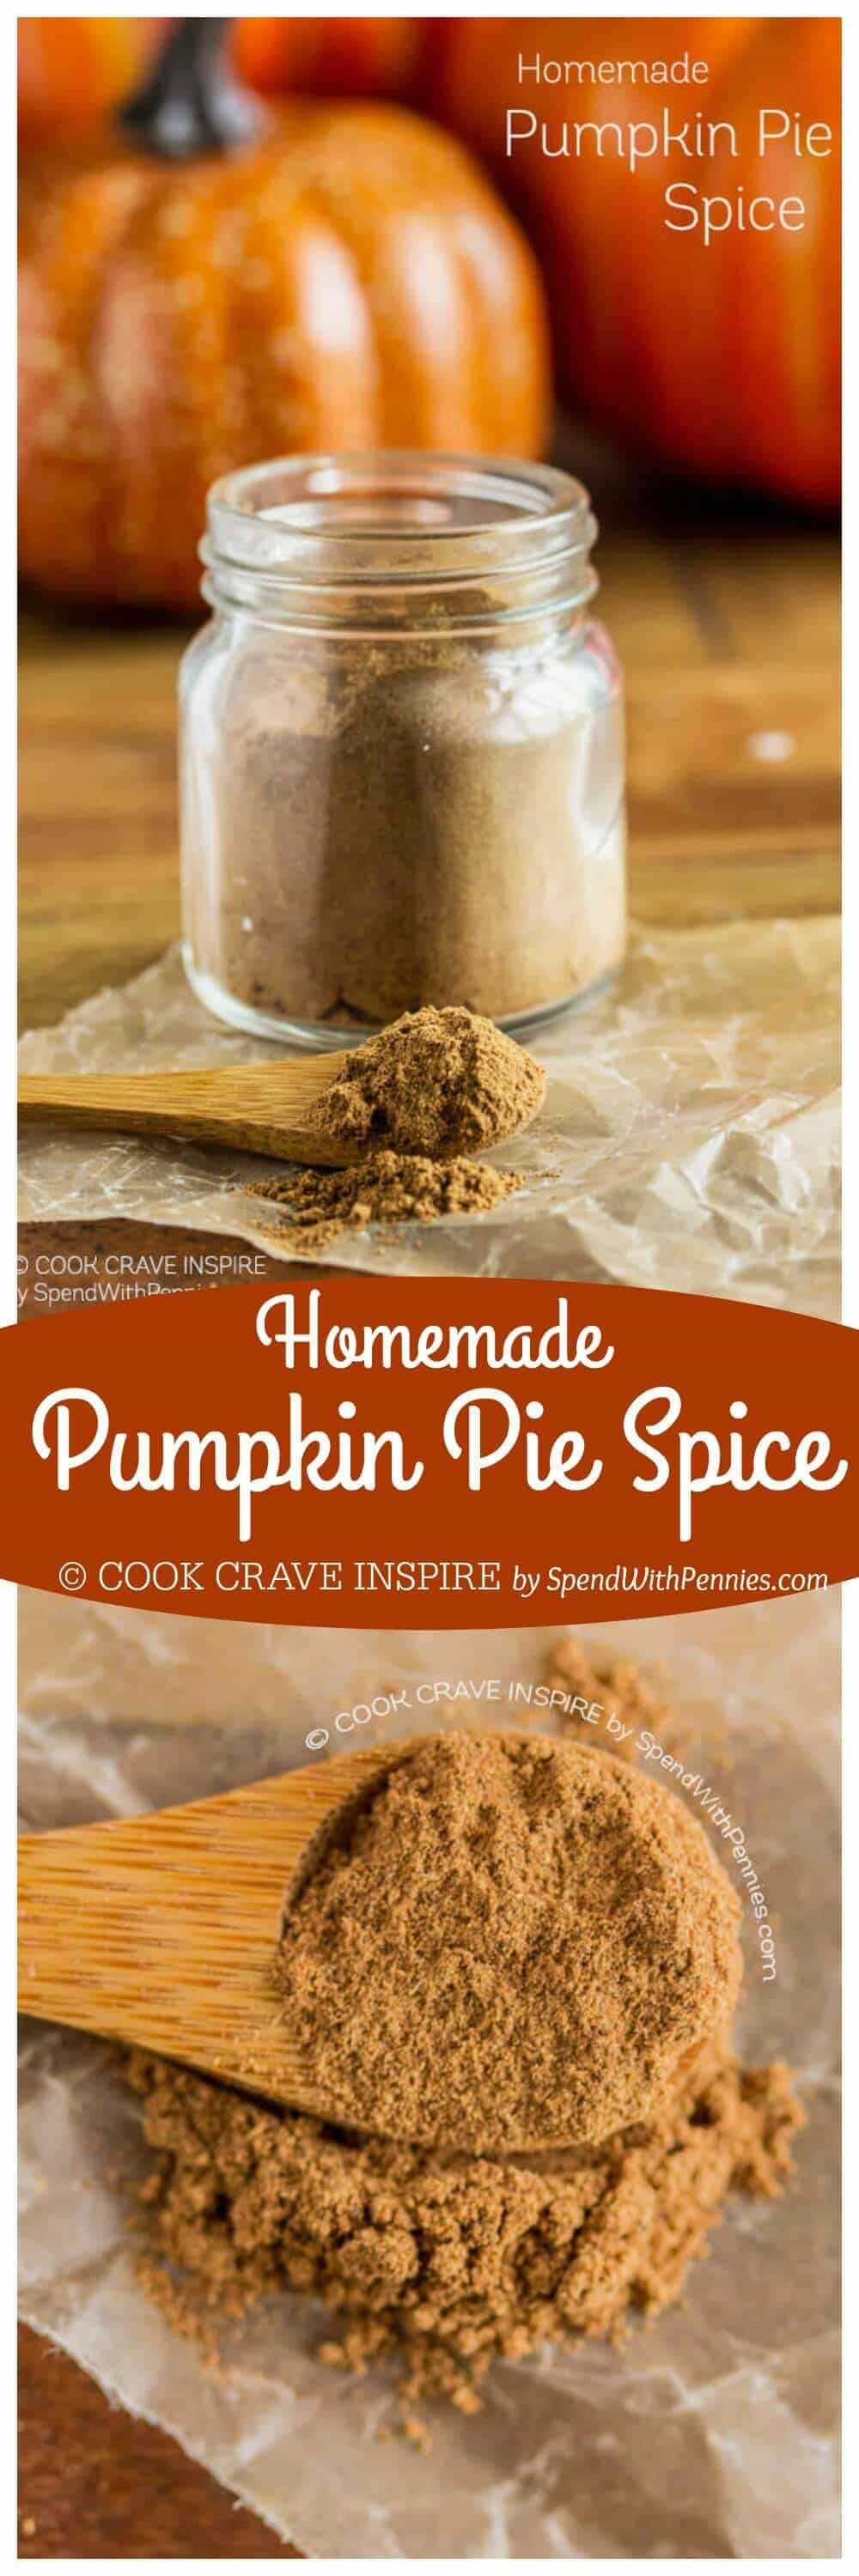 Best ideas about DIY Pumpkin Pie Spice . Save or Pin Homemade Pumpkin Pie Spice Recipe Spend With Pennies Now.